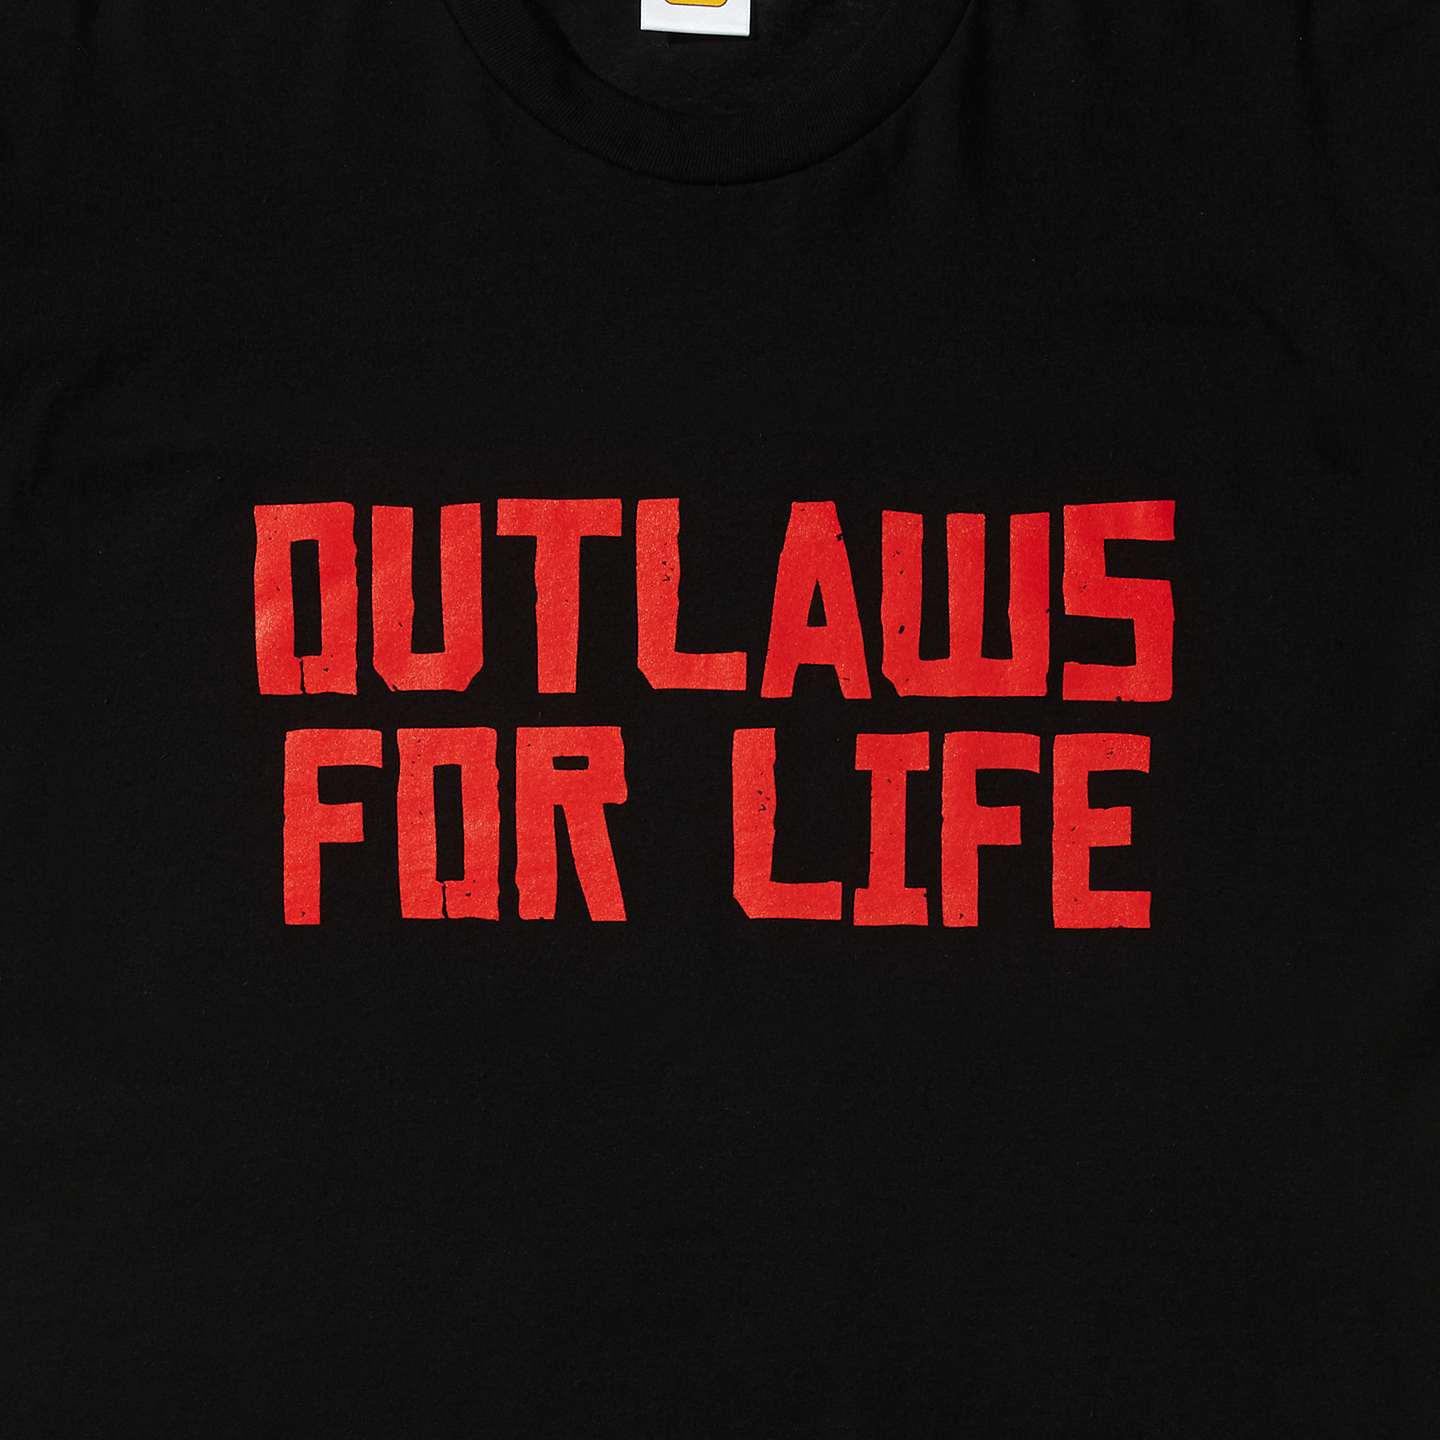 OUTLAWS FOR LIFE Tee (Red on Black)   Rockstar Warehouse